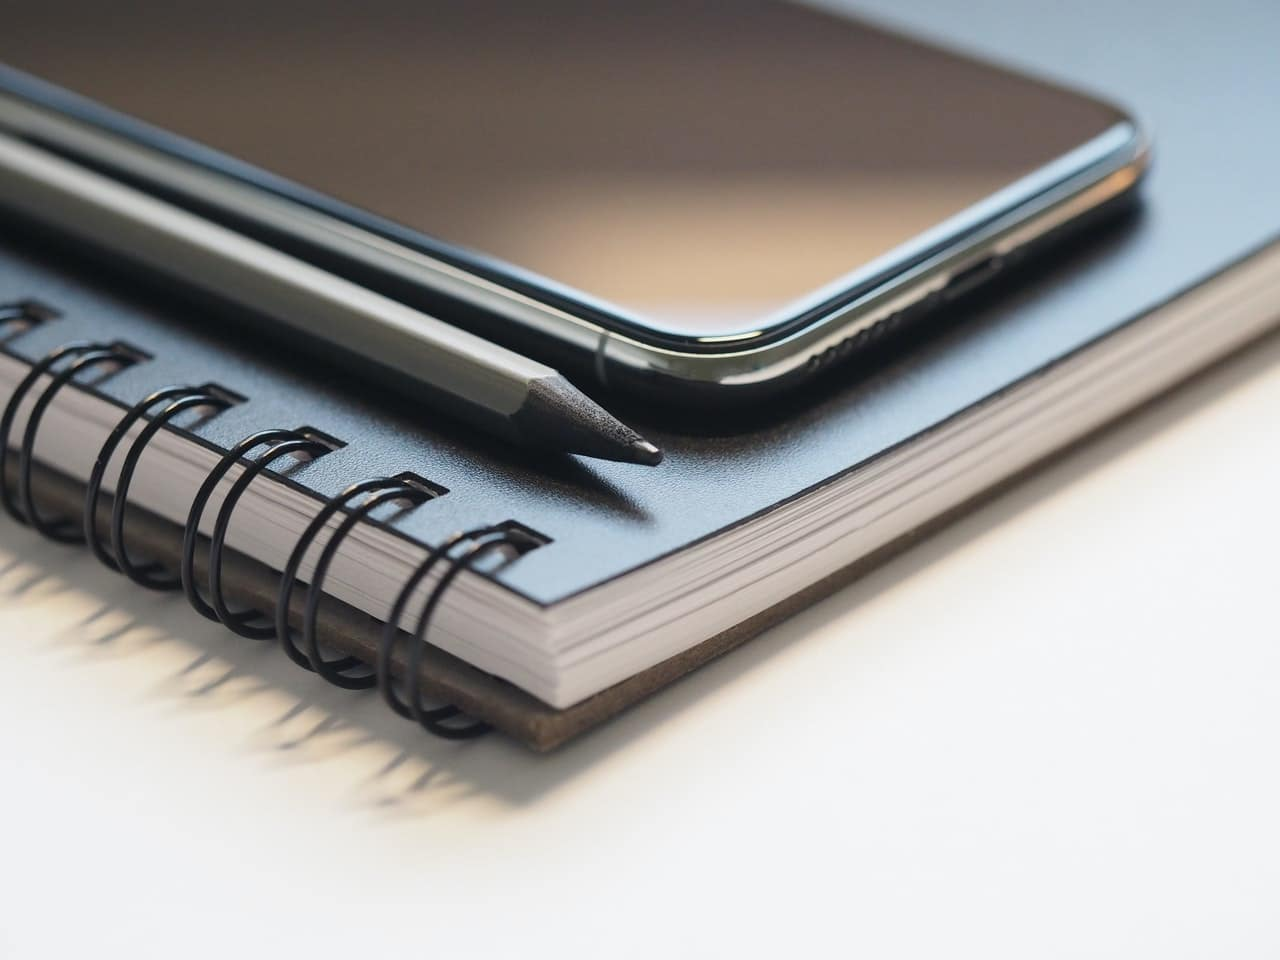 phone on a notebook